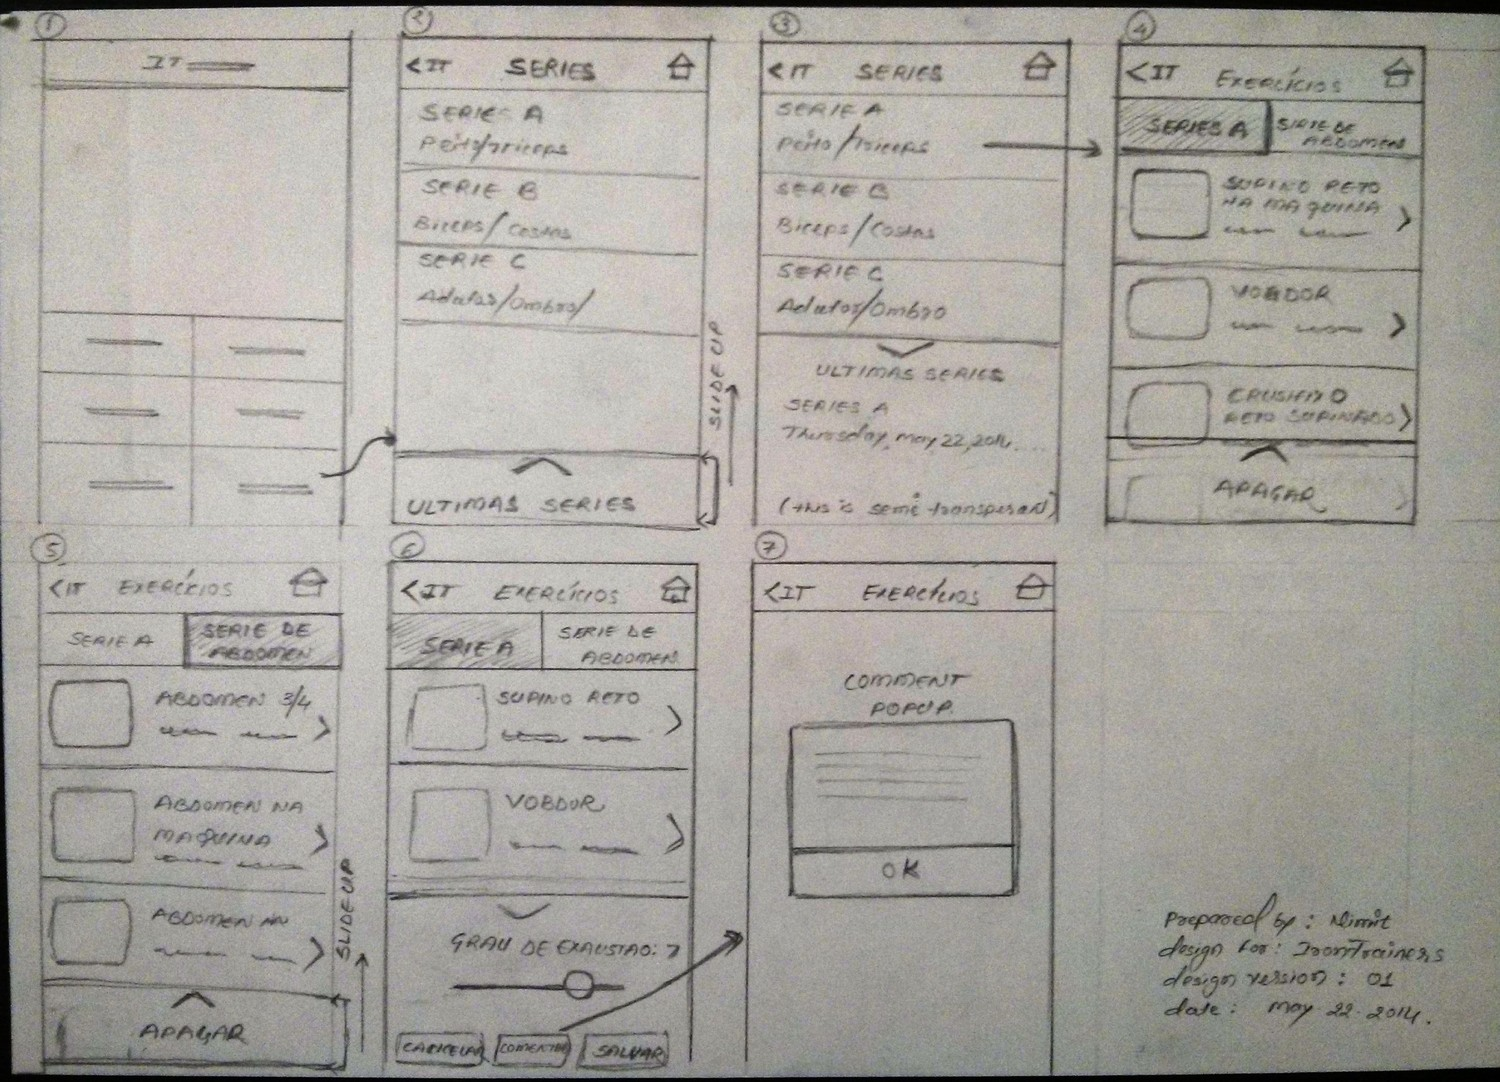 Wire Frame Design With User Experience Flow By Ubrain